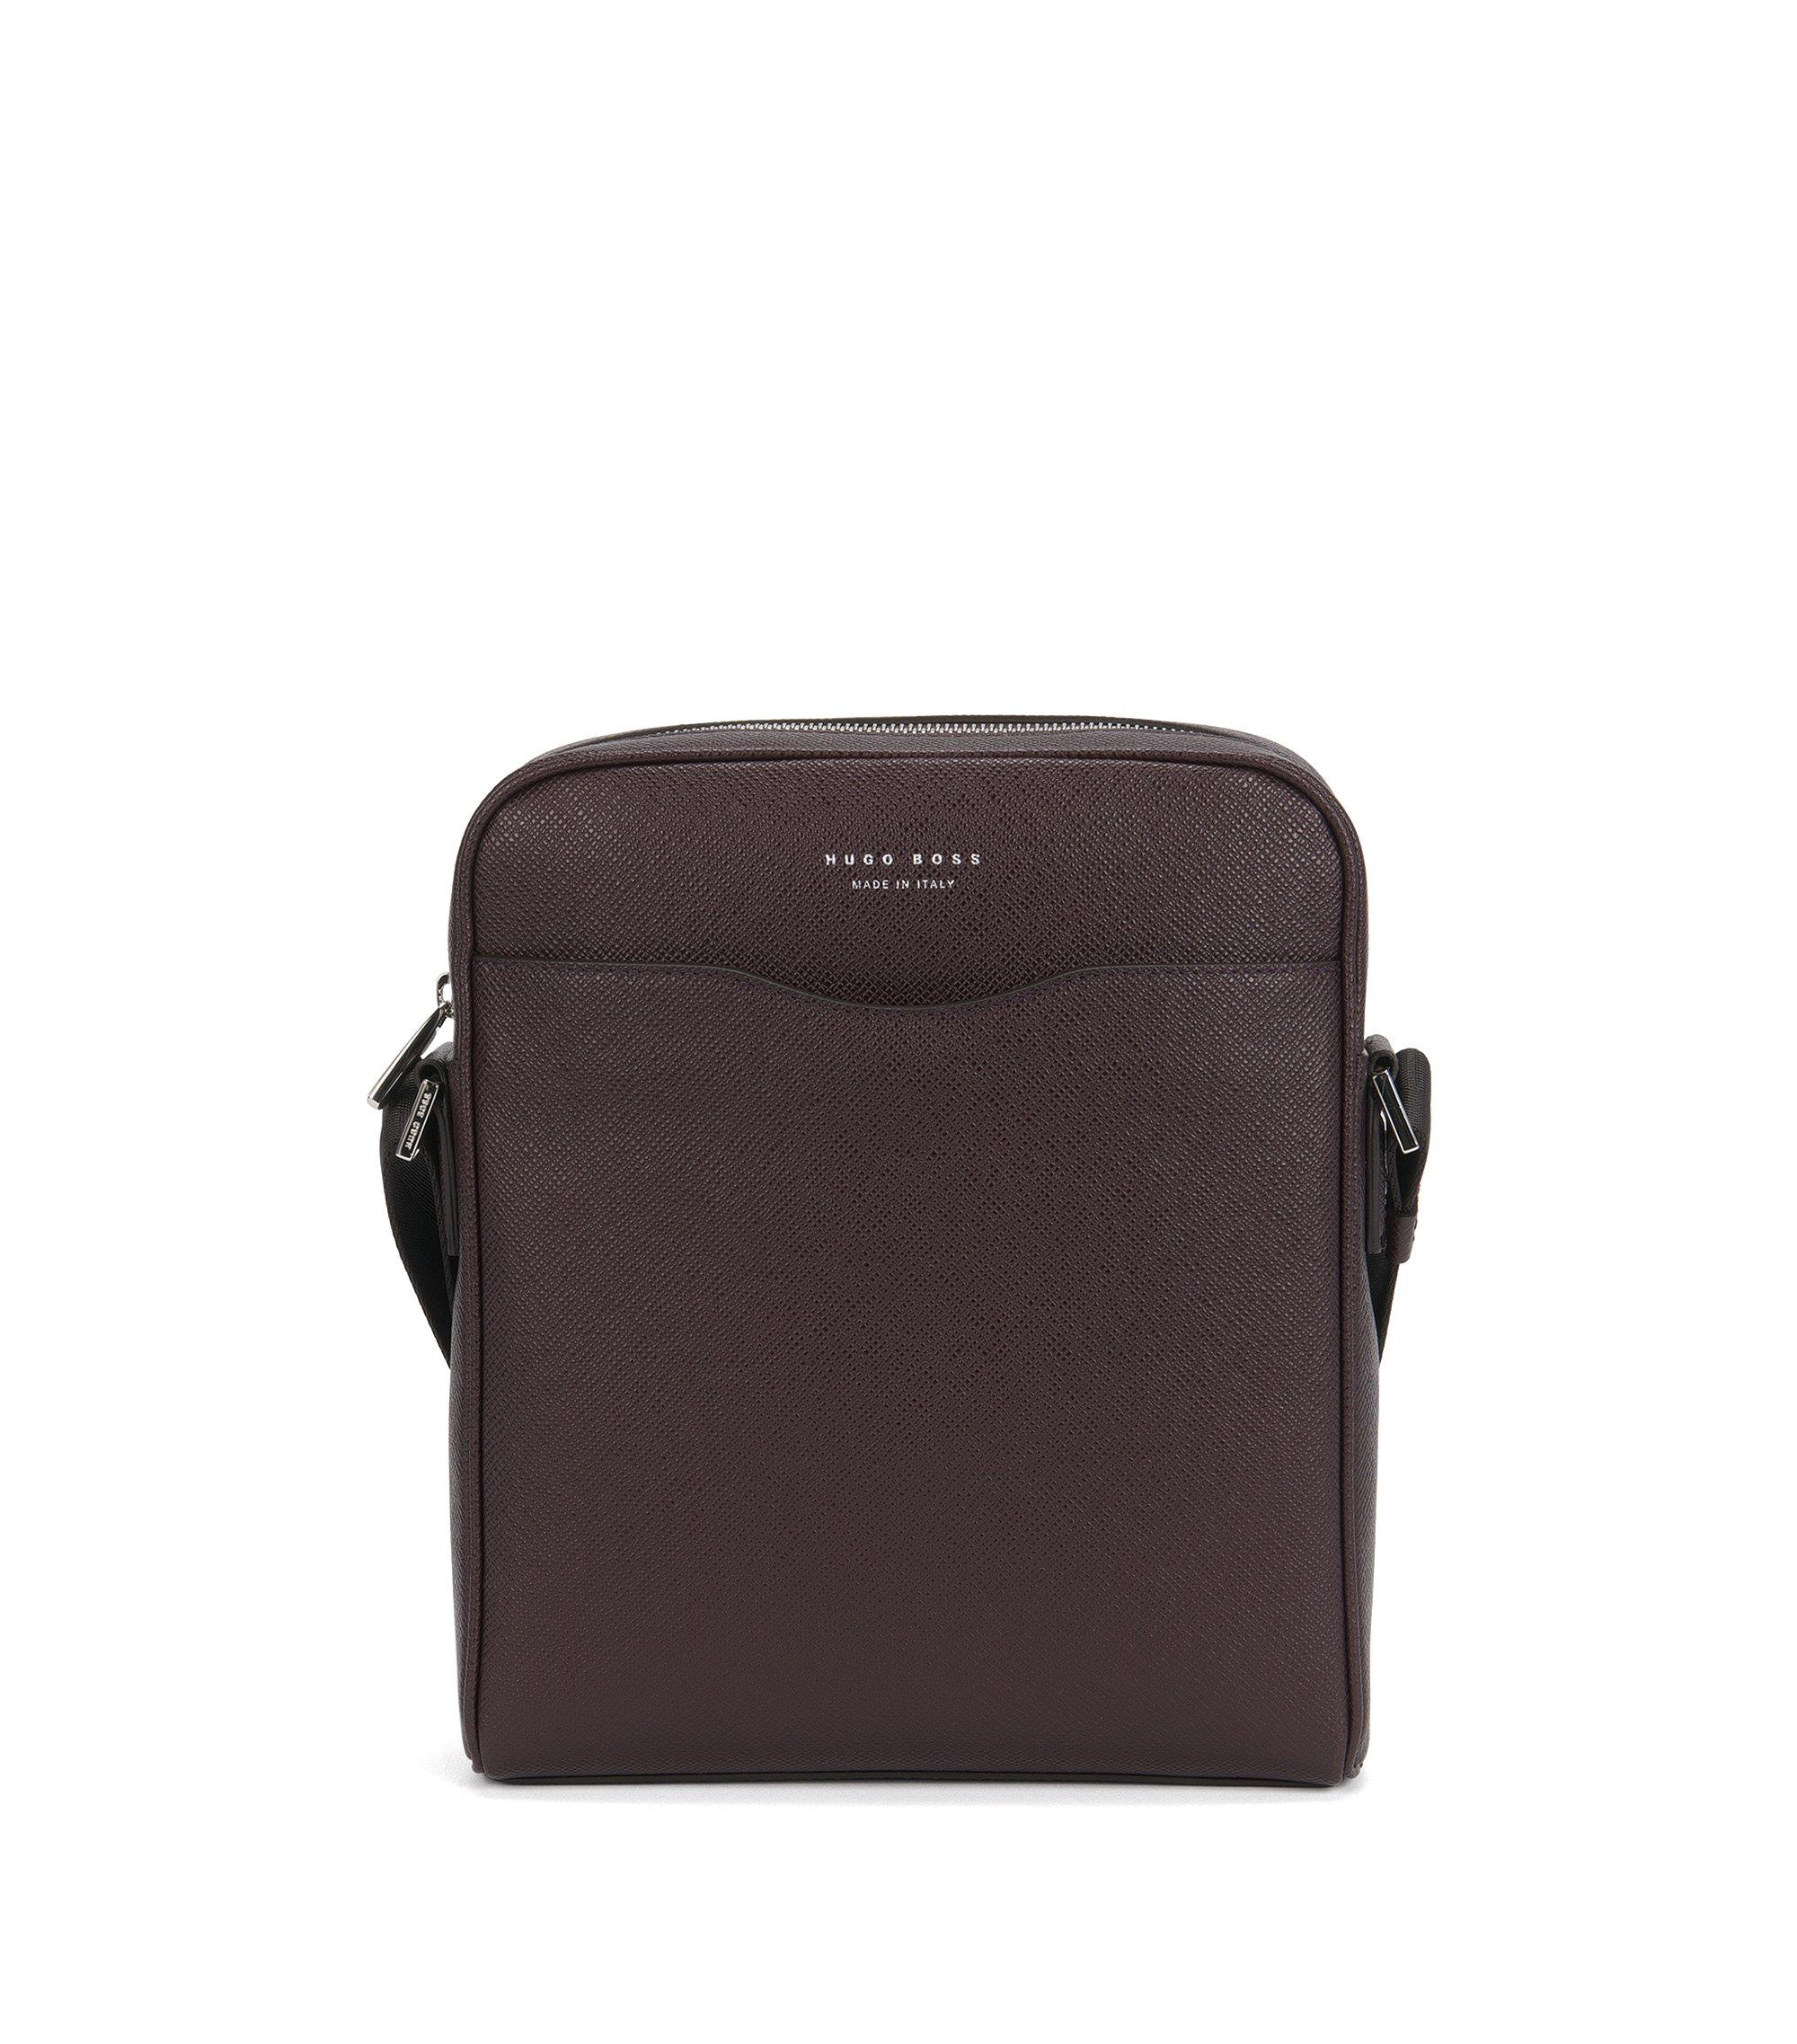 Sac reporter de la collection Signature en cuir palmellato, Rouge sombre